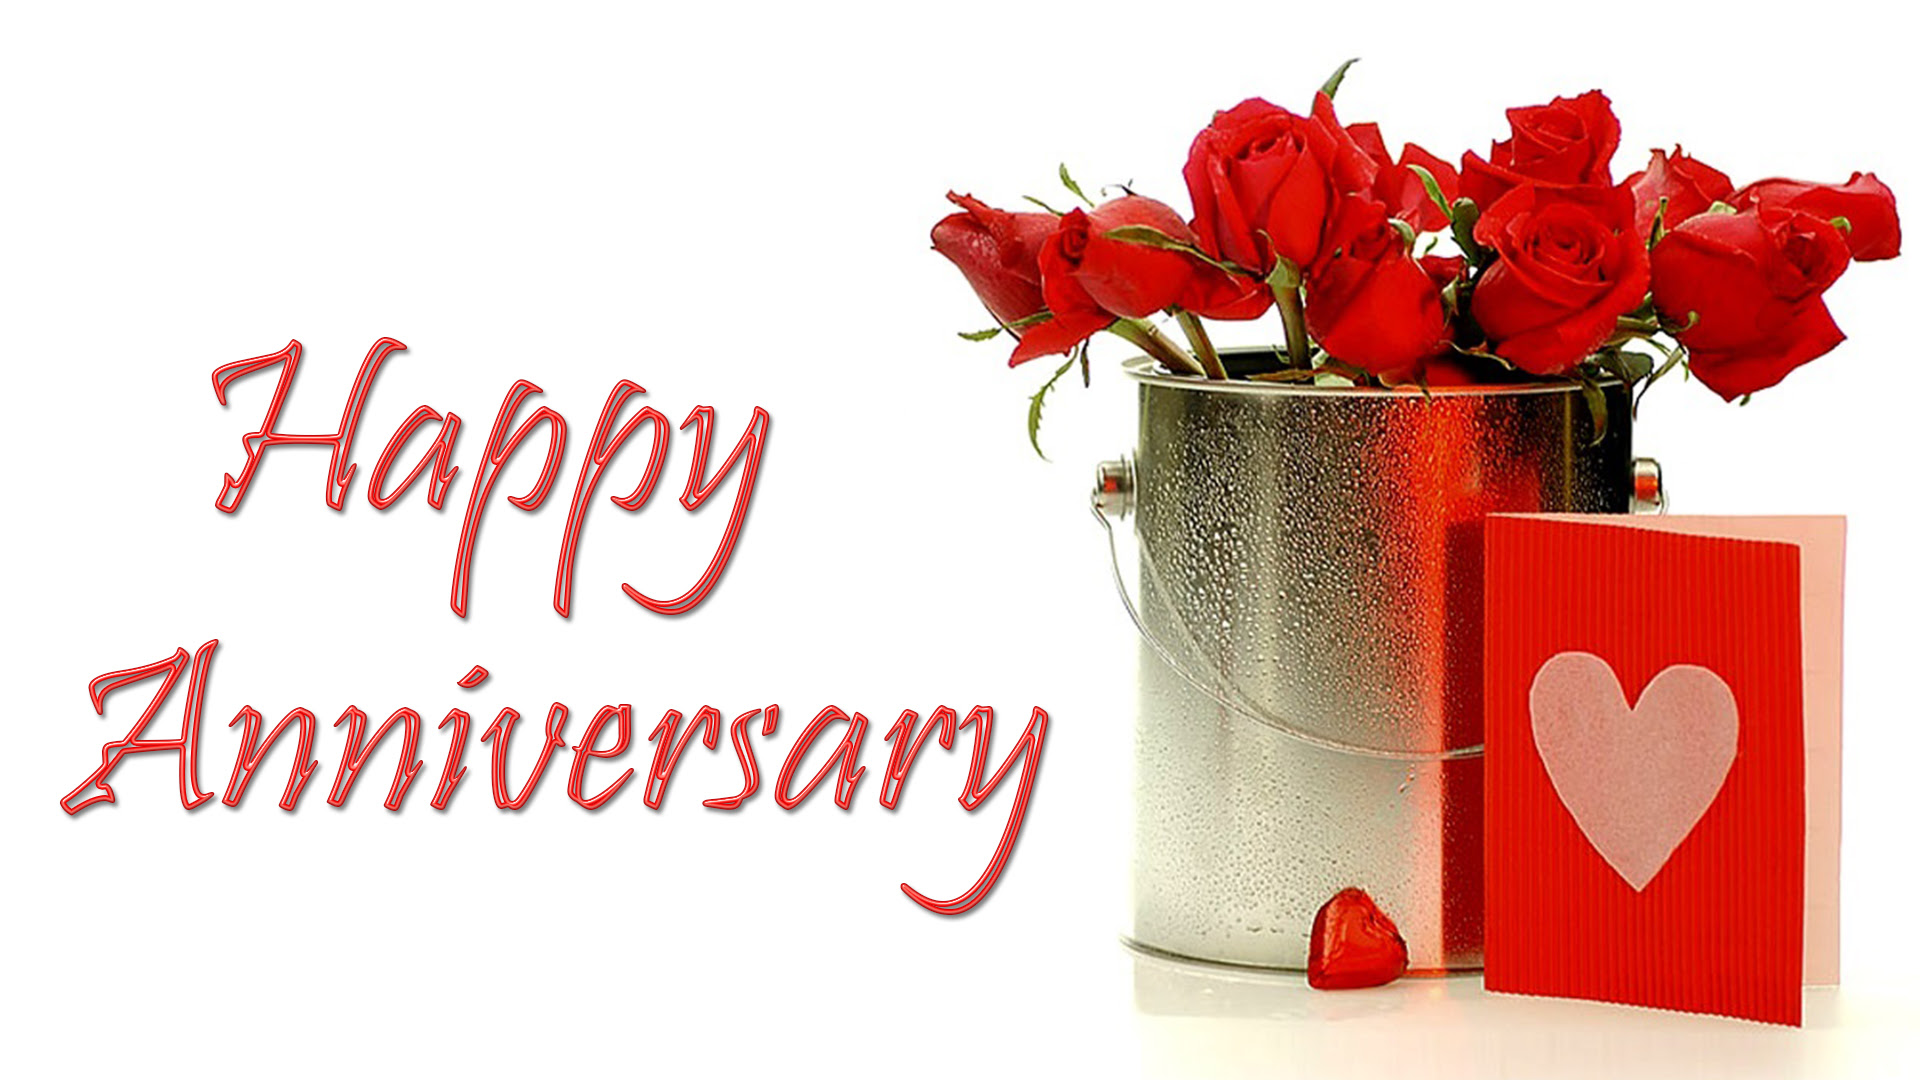 Happy Anniversary Images Pictures Hd Wallpapers